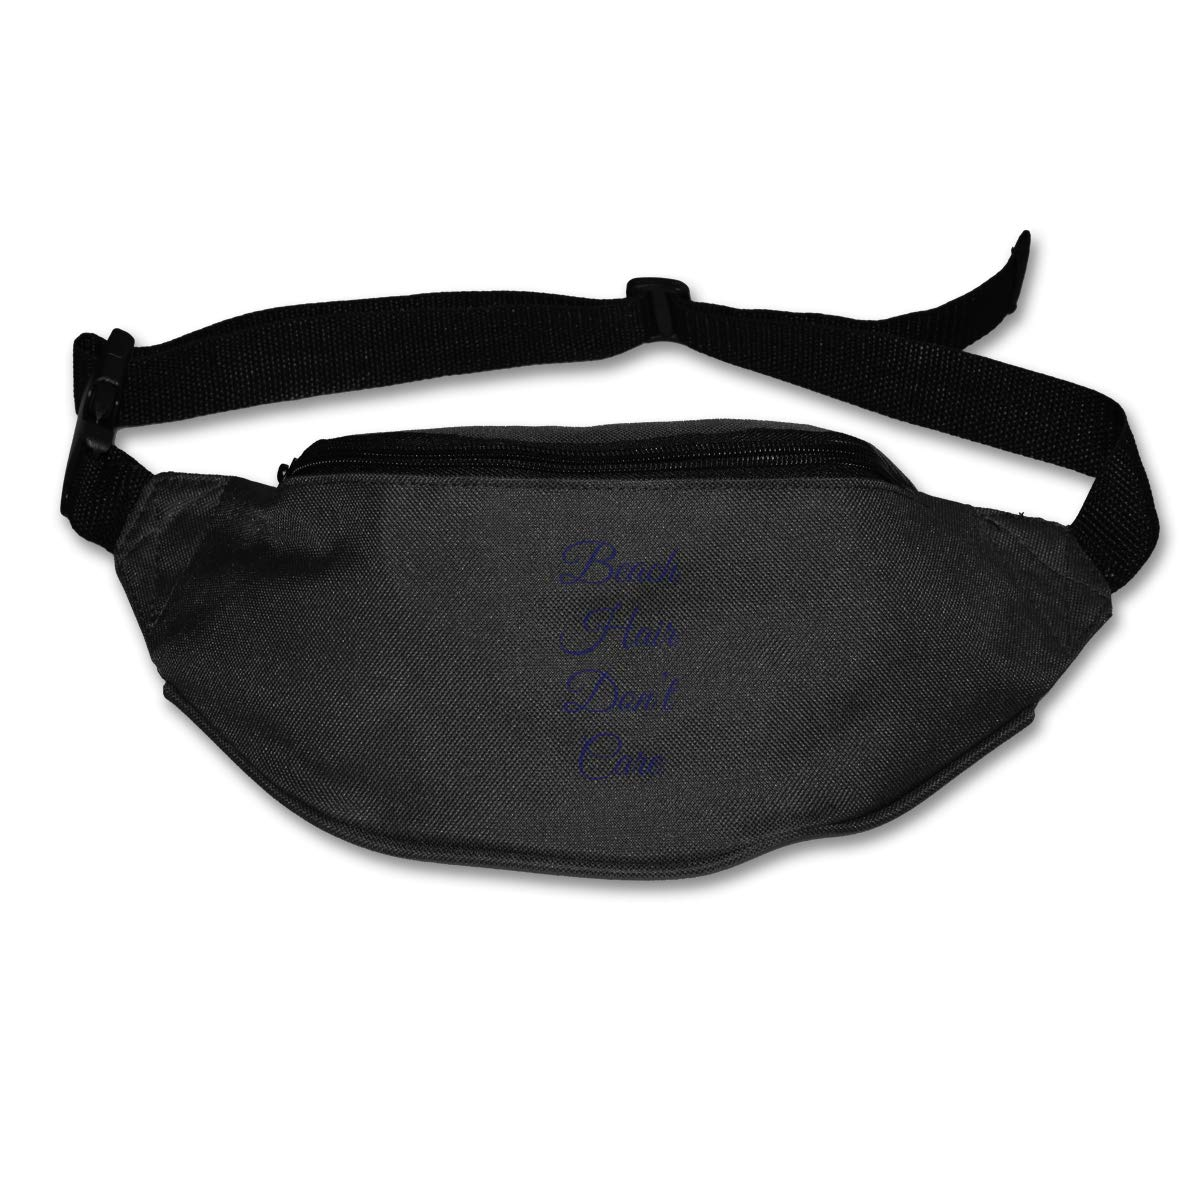 Beach Hair Dont Care 5 Sport Waist Pack Fanny Pack Adjustable For Travel